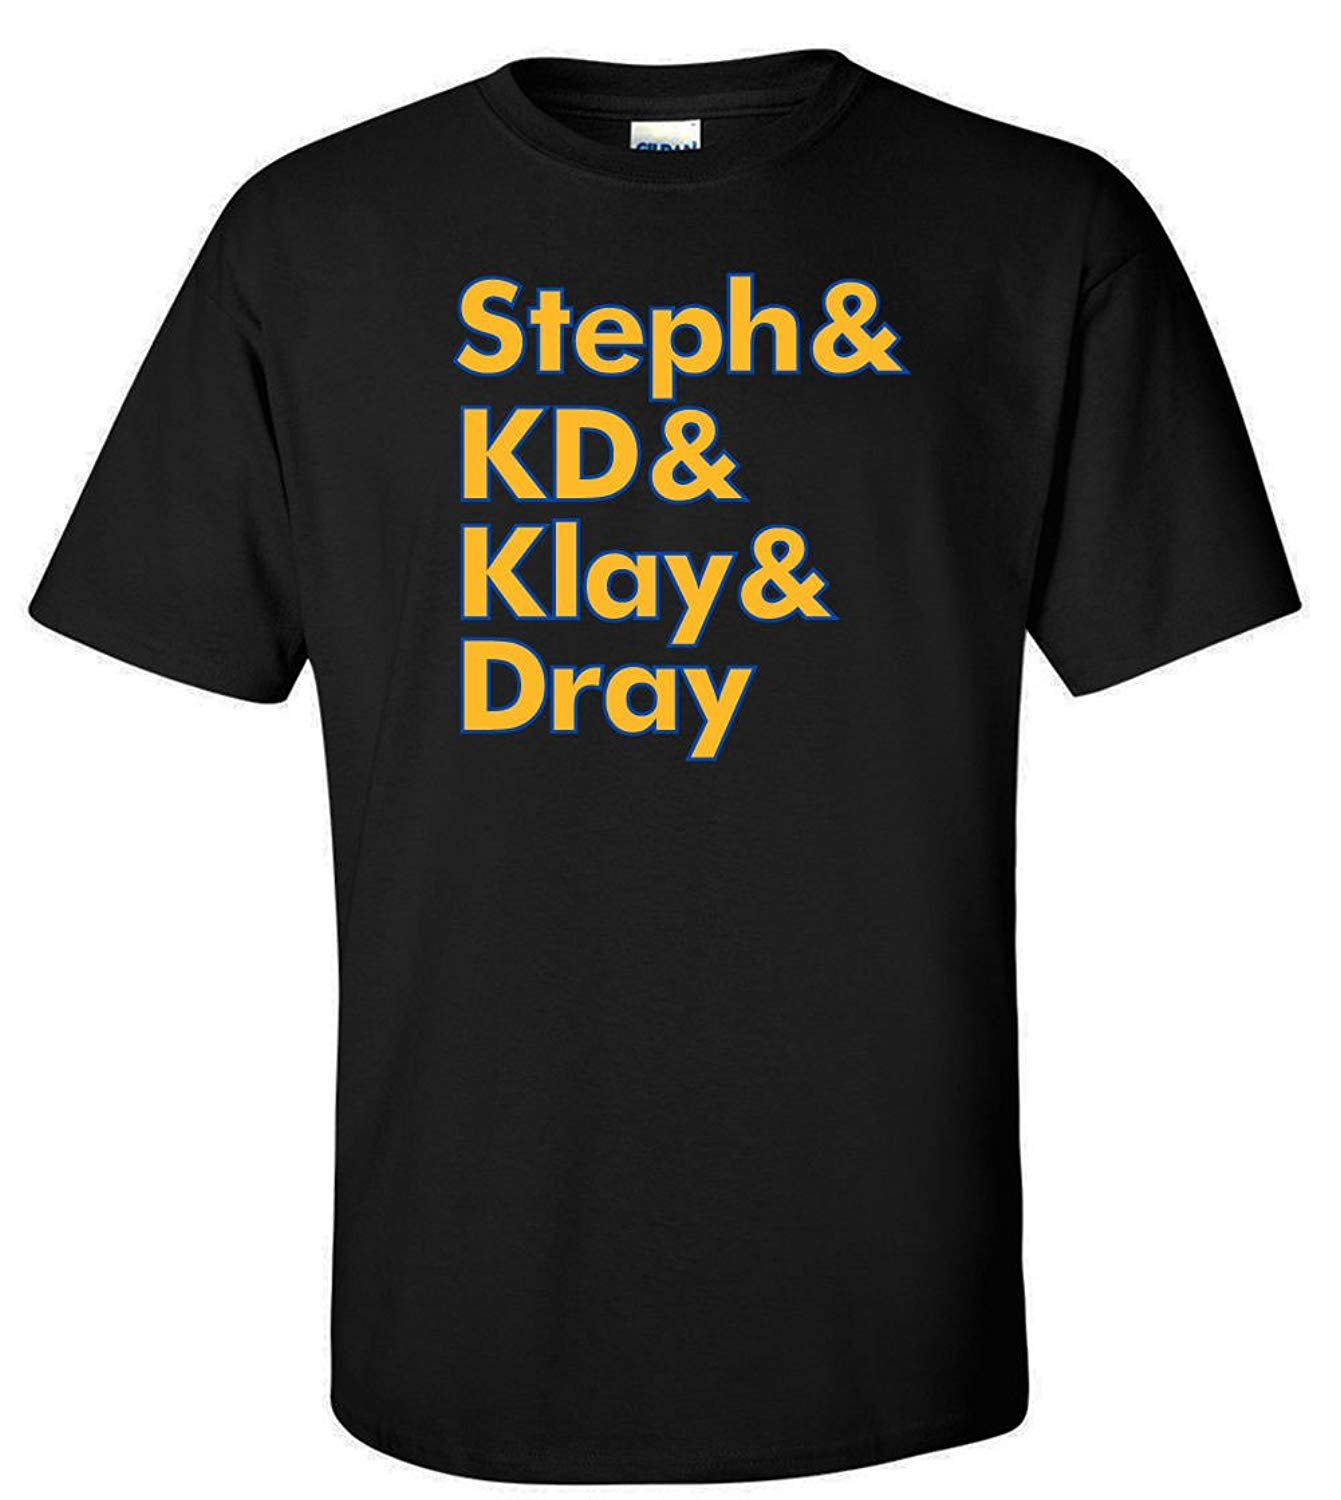 reputable site 36264 34377 Get Quotations · WB SHIRTS Black Golden State KD Steph,KD,Klay,Dray T-Shirt